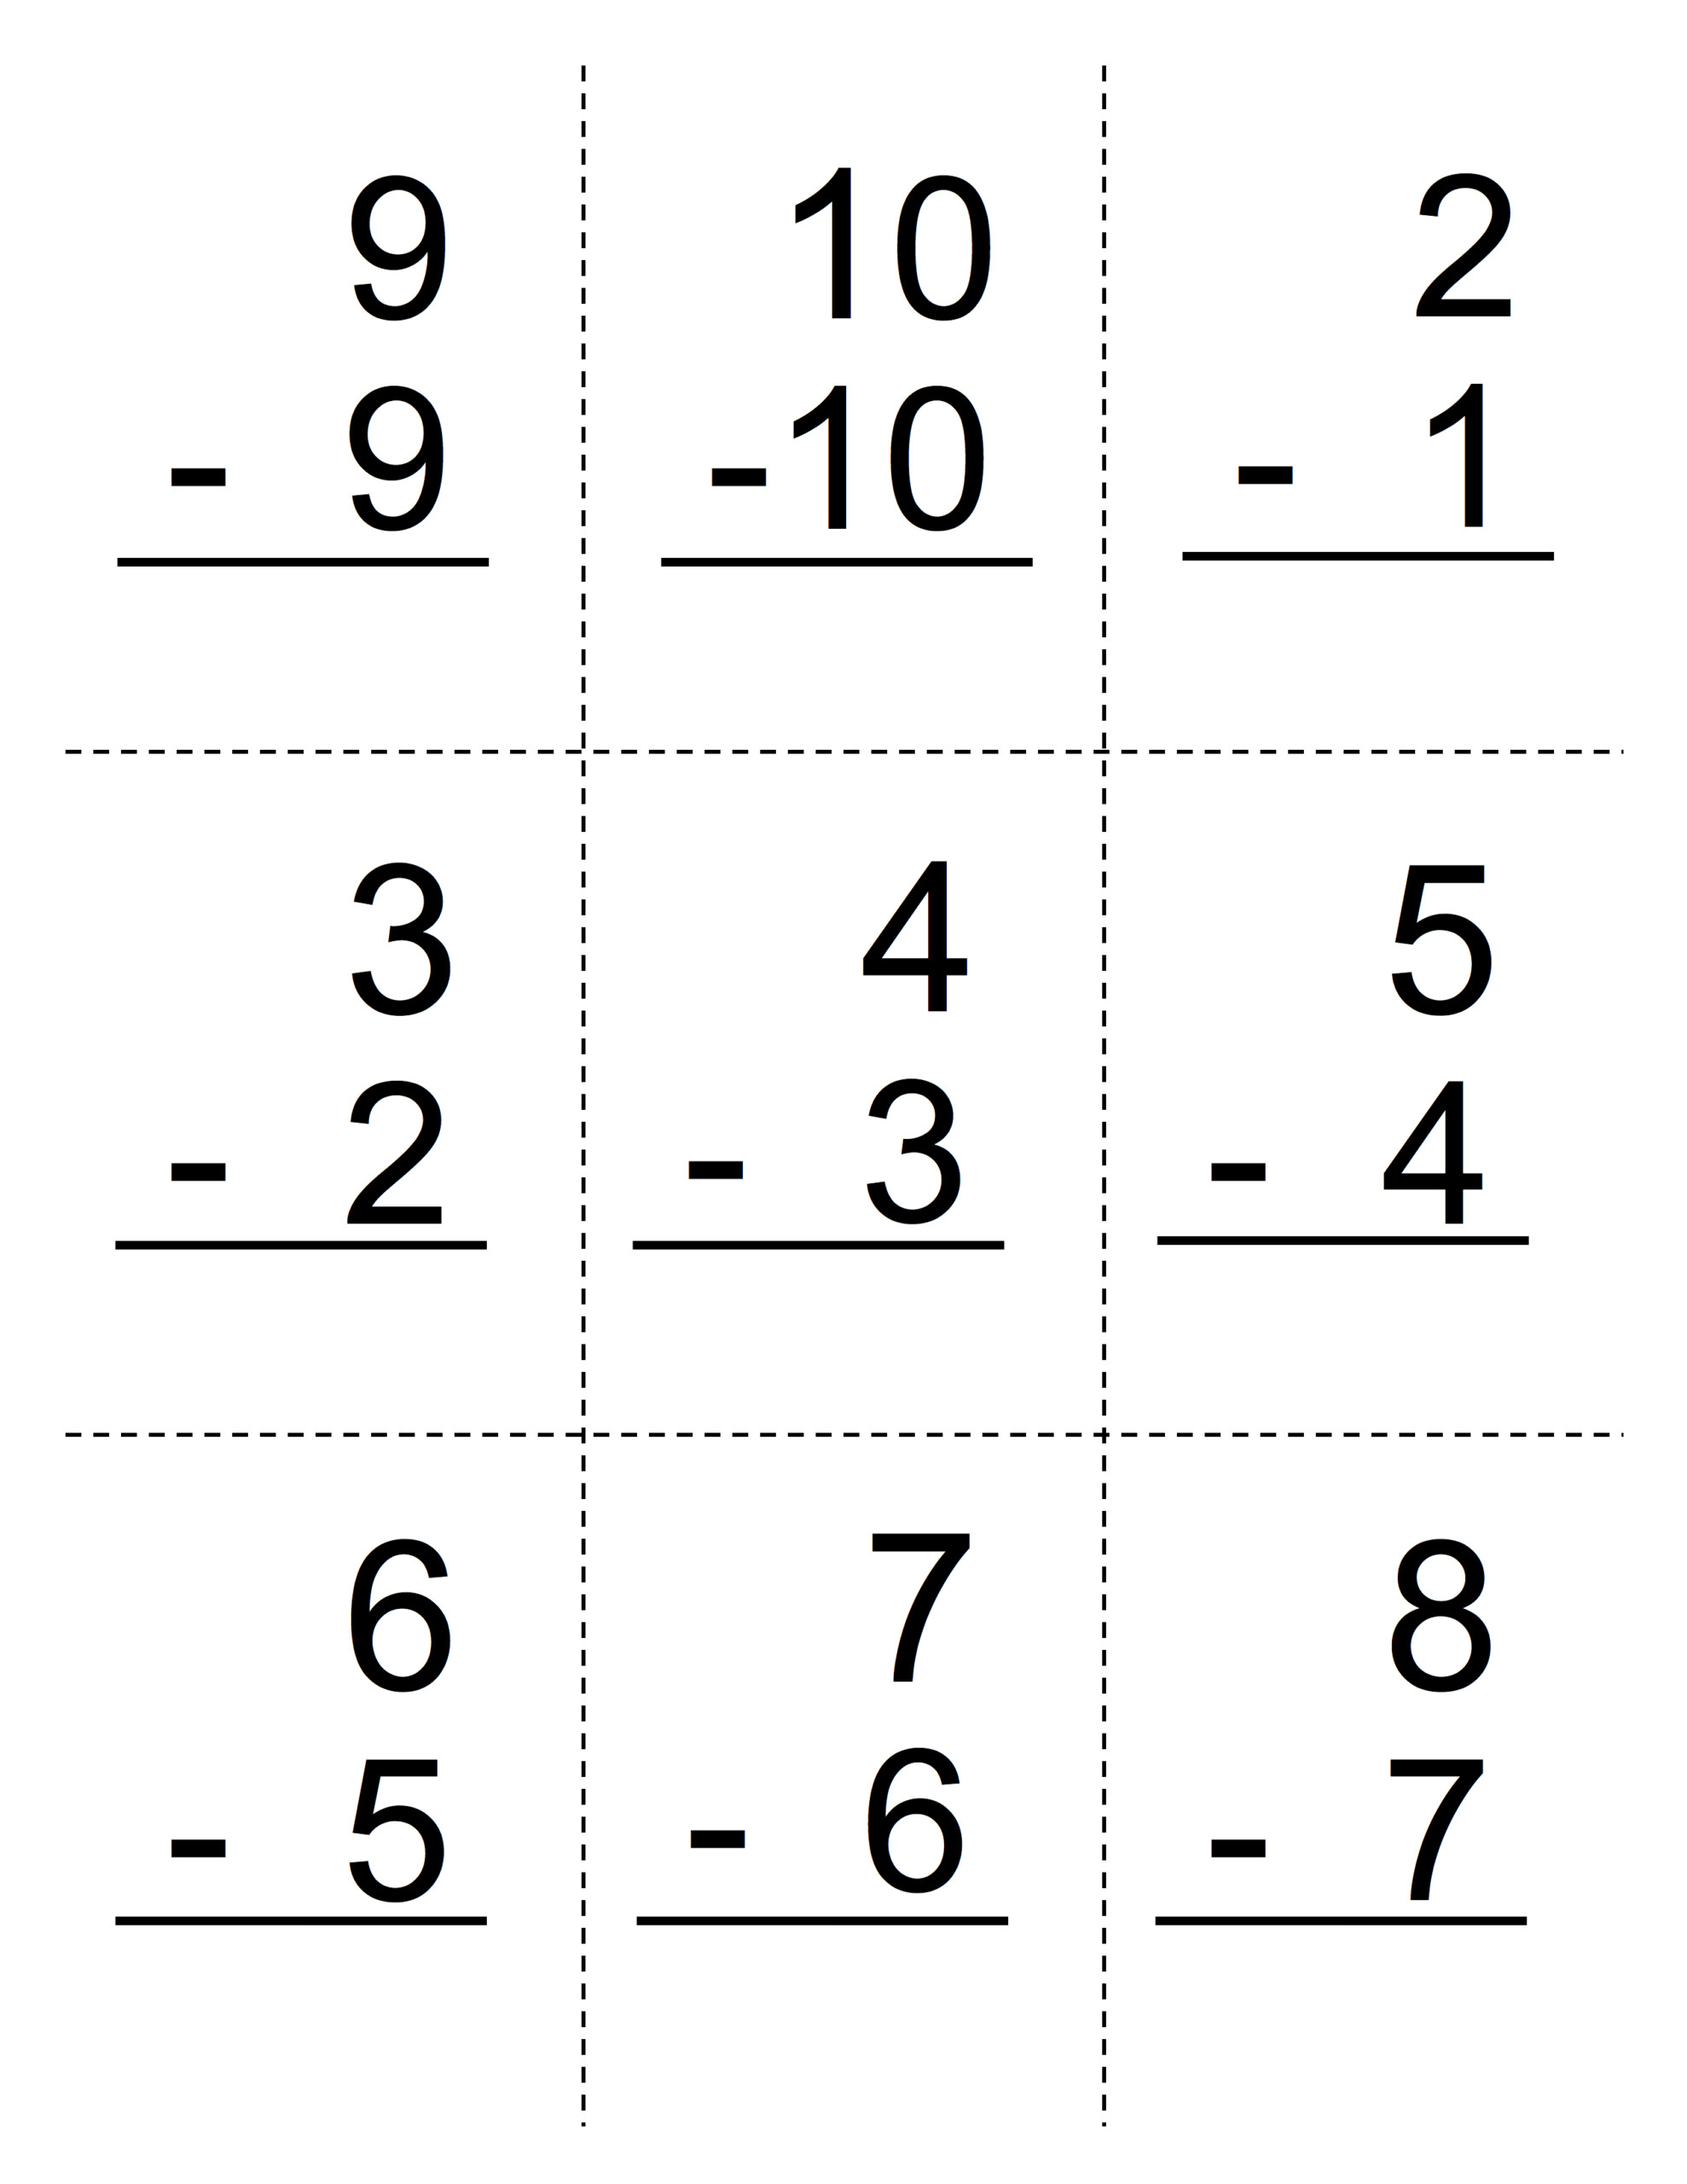 Math Flashcards Worksheet | Printable Worksheets And intended for Free Printable Horizontal Multiplication Flash Cards